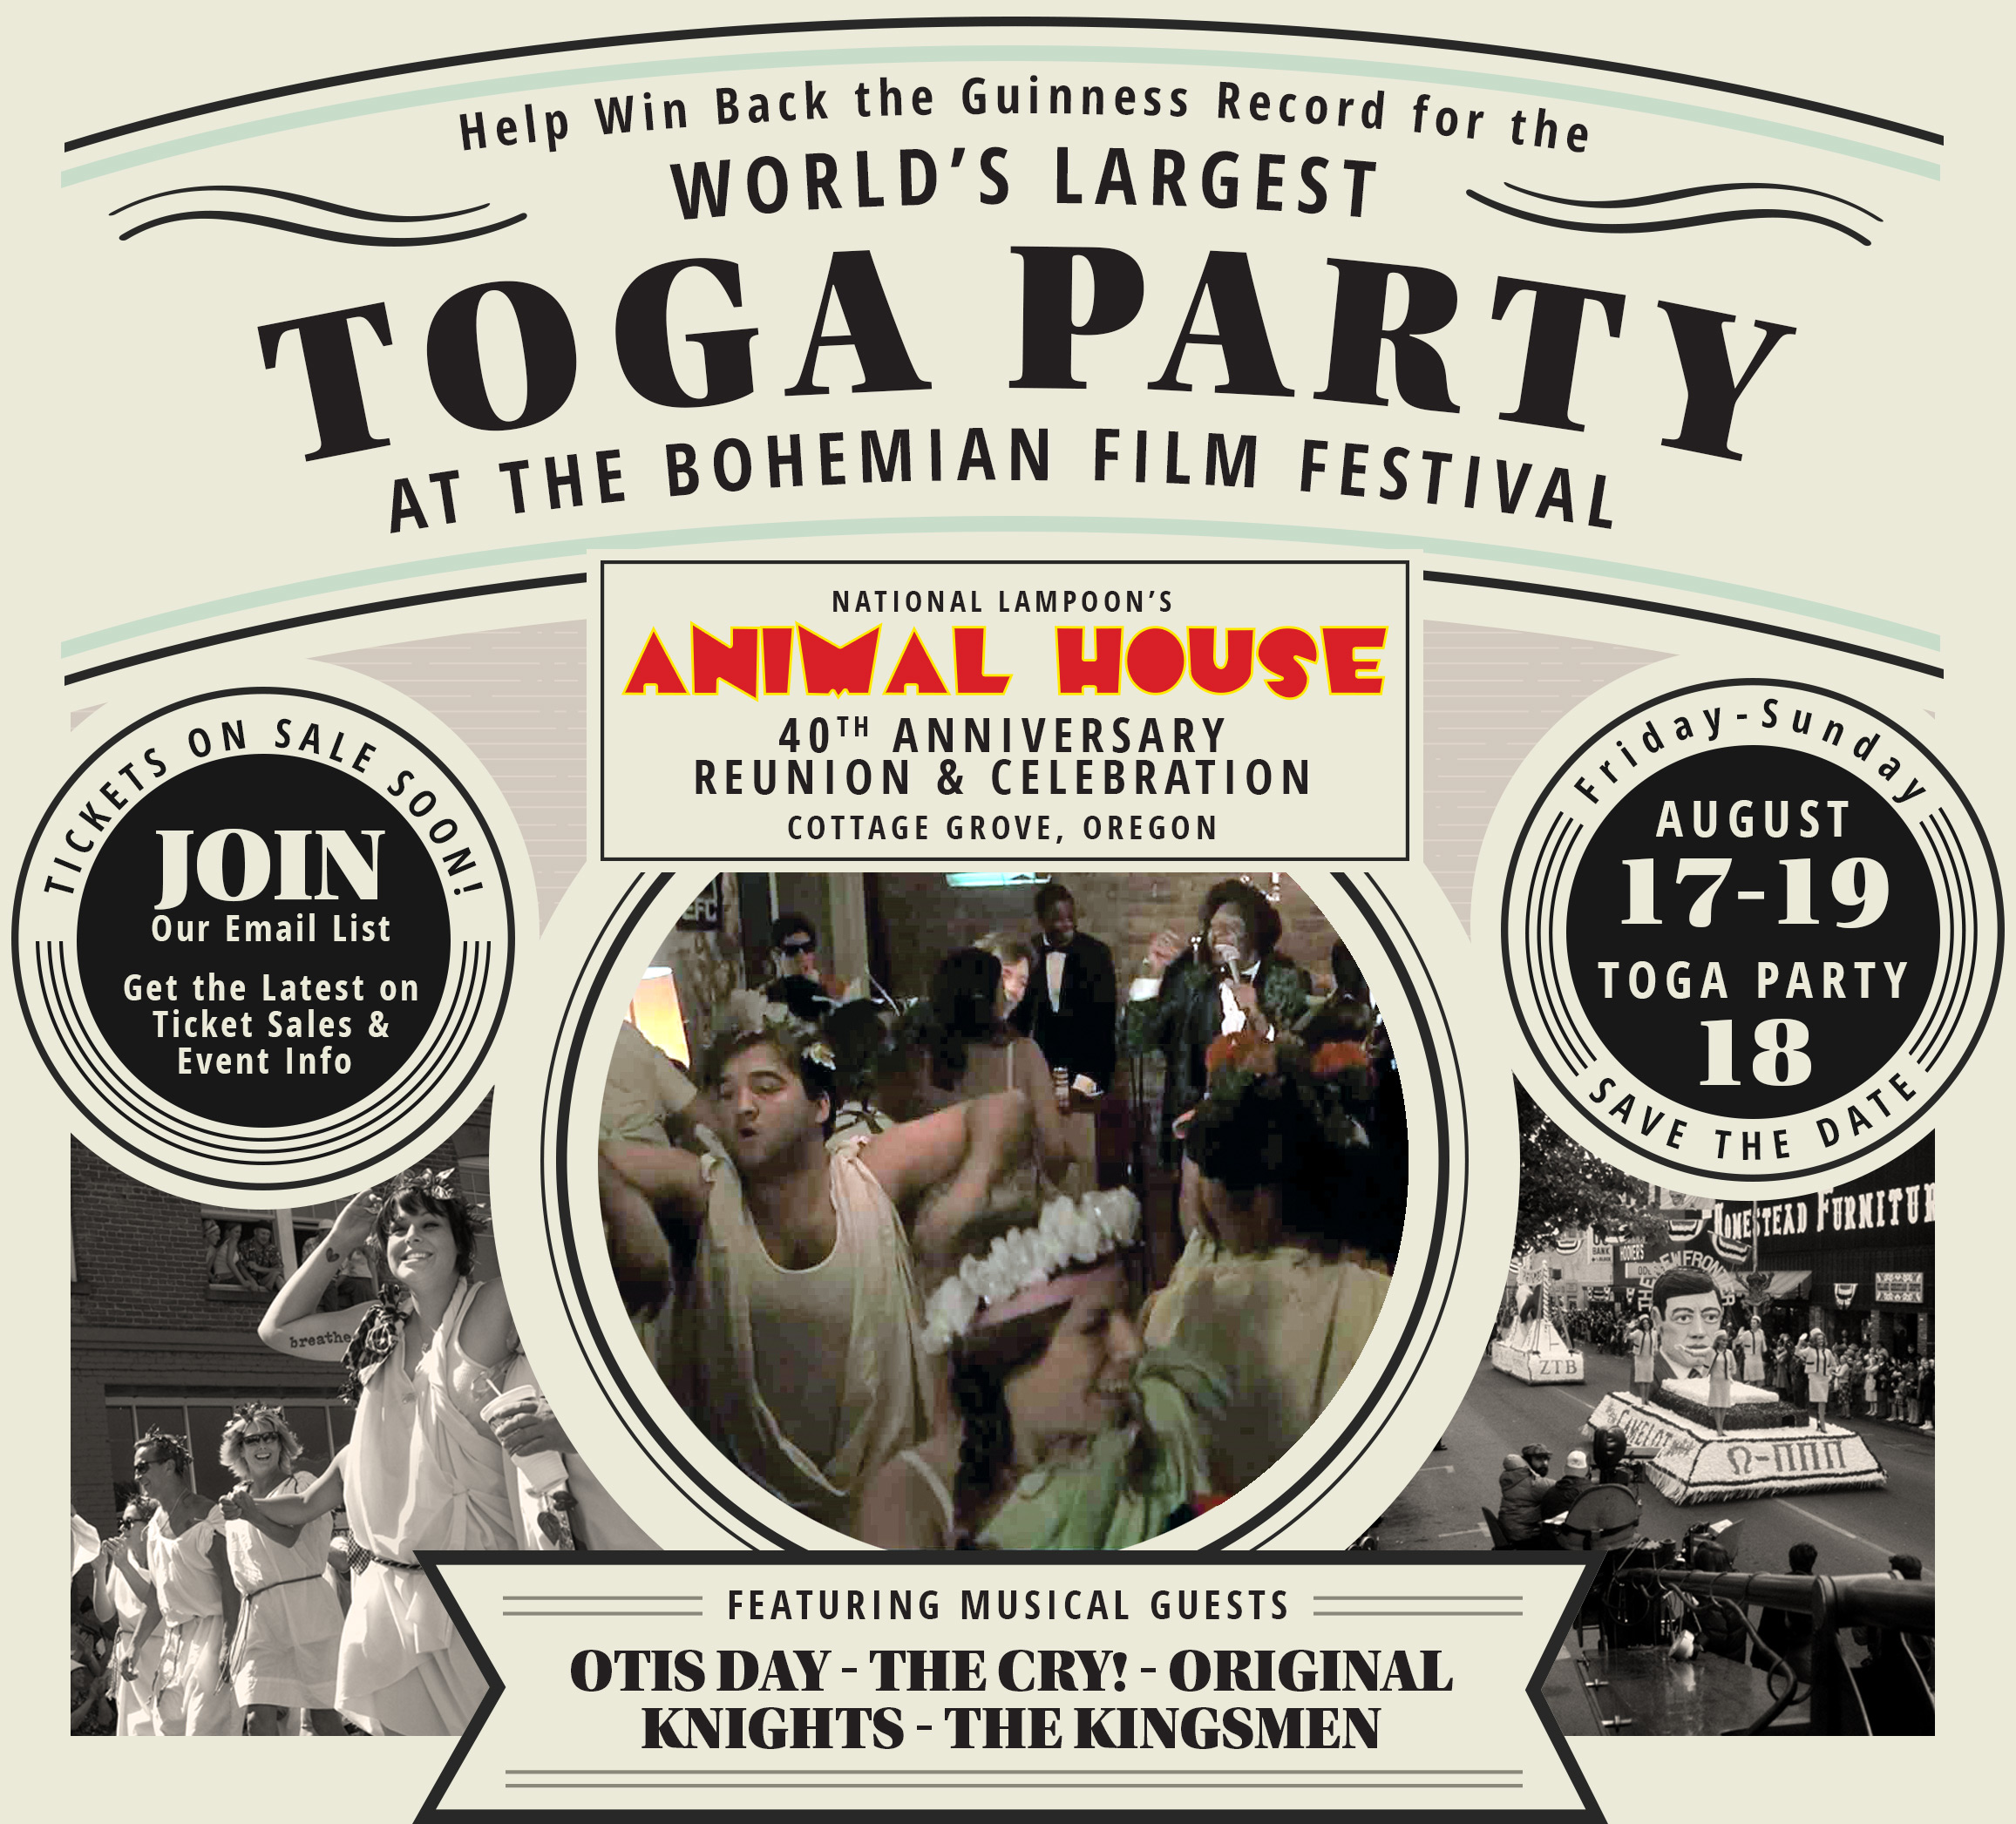 Now Wait a Minute… World-record Grabbing Toga Party